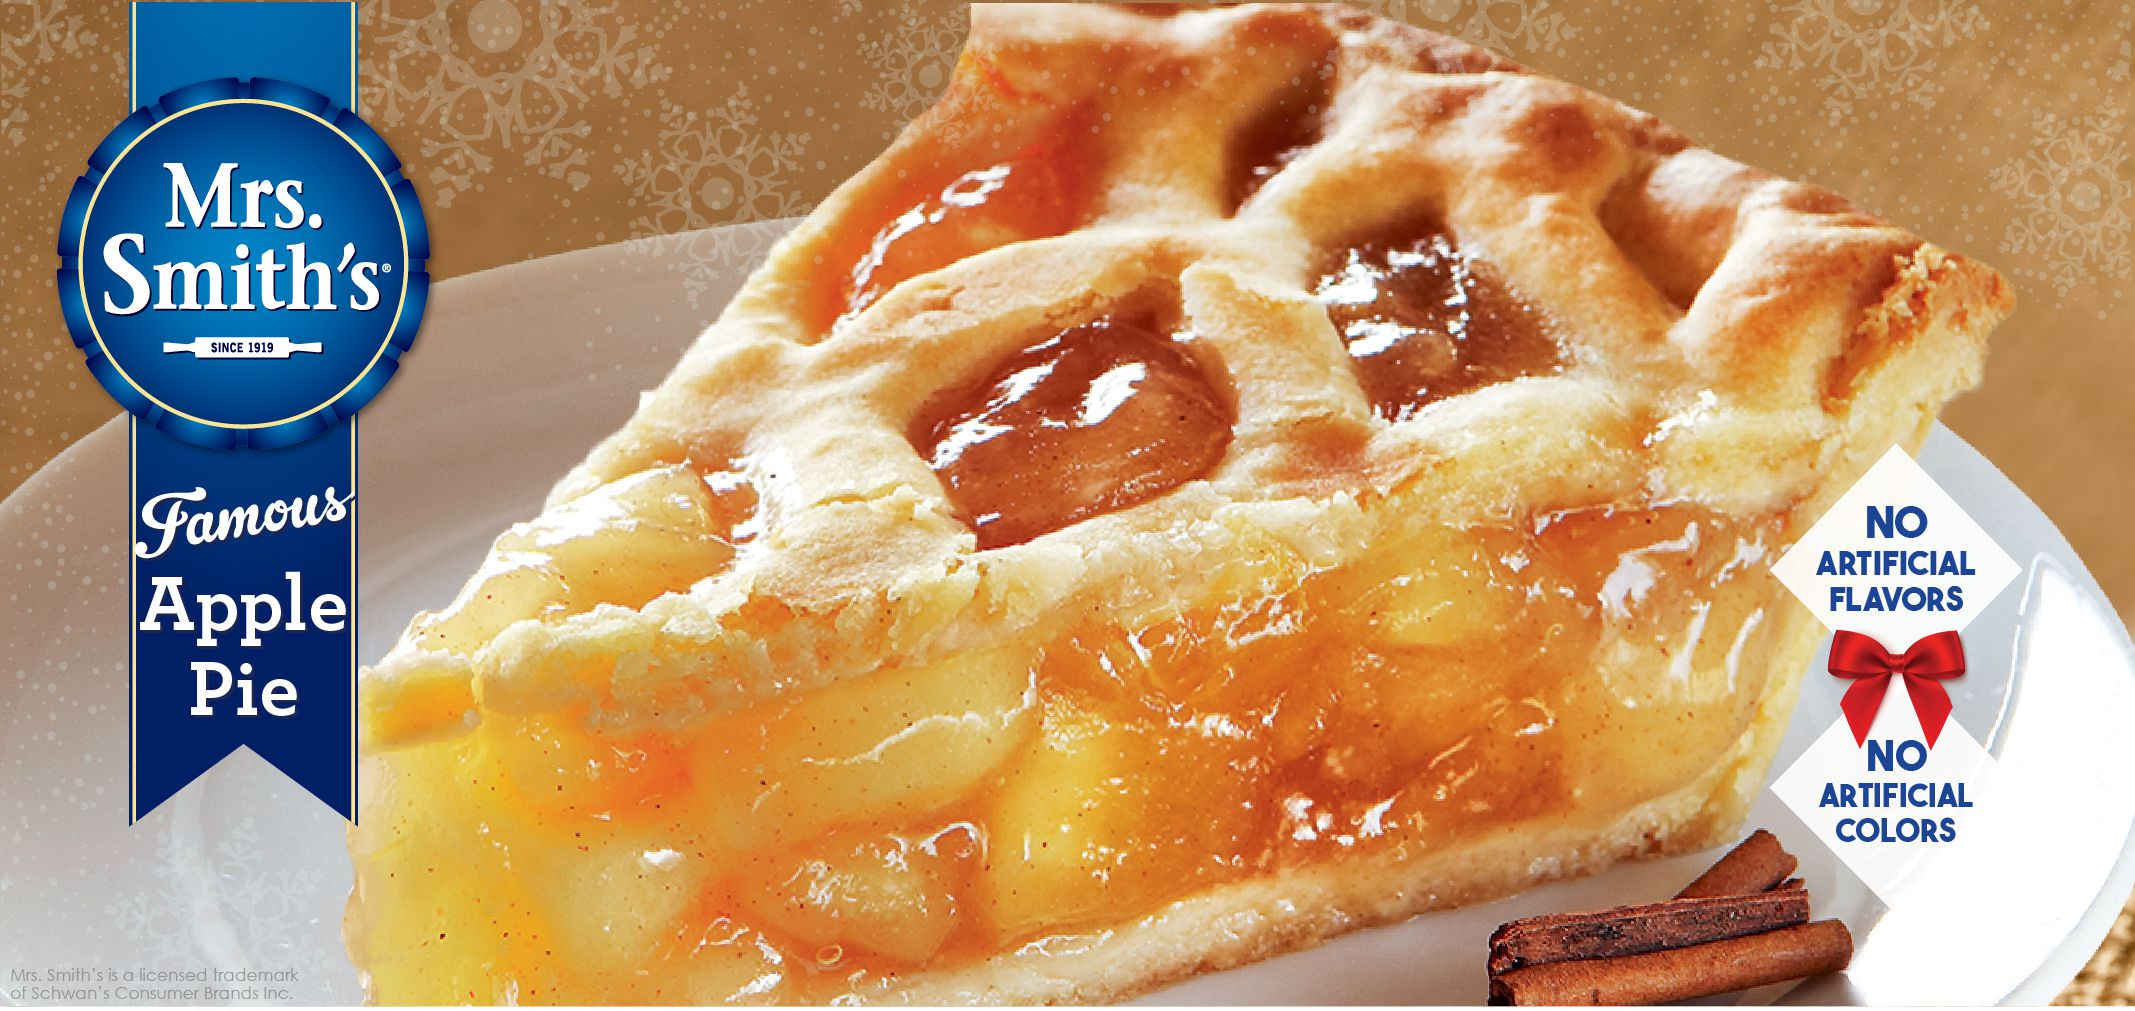 mrs. smith's® famous apple pie label image